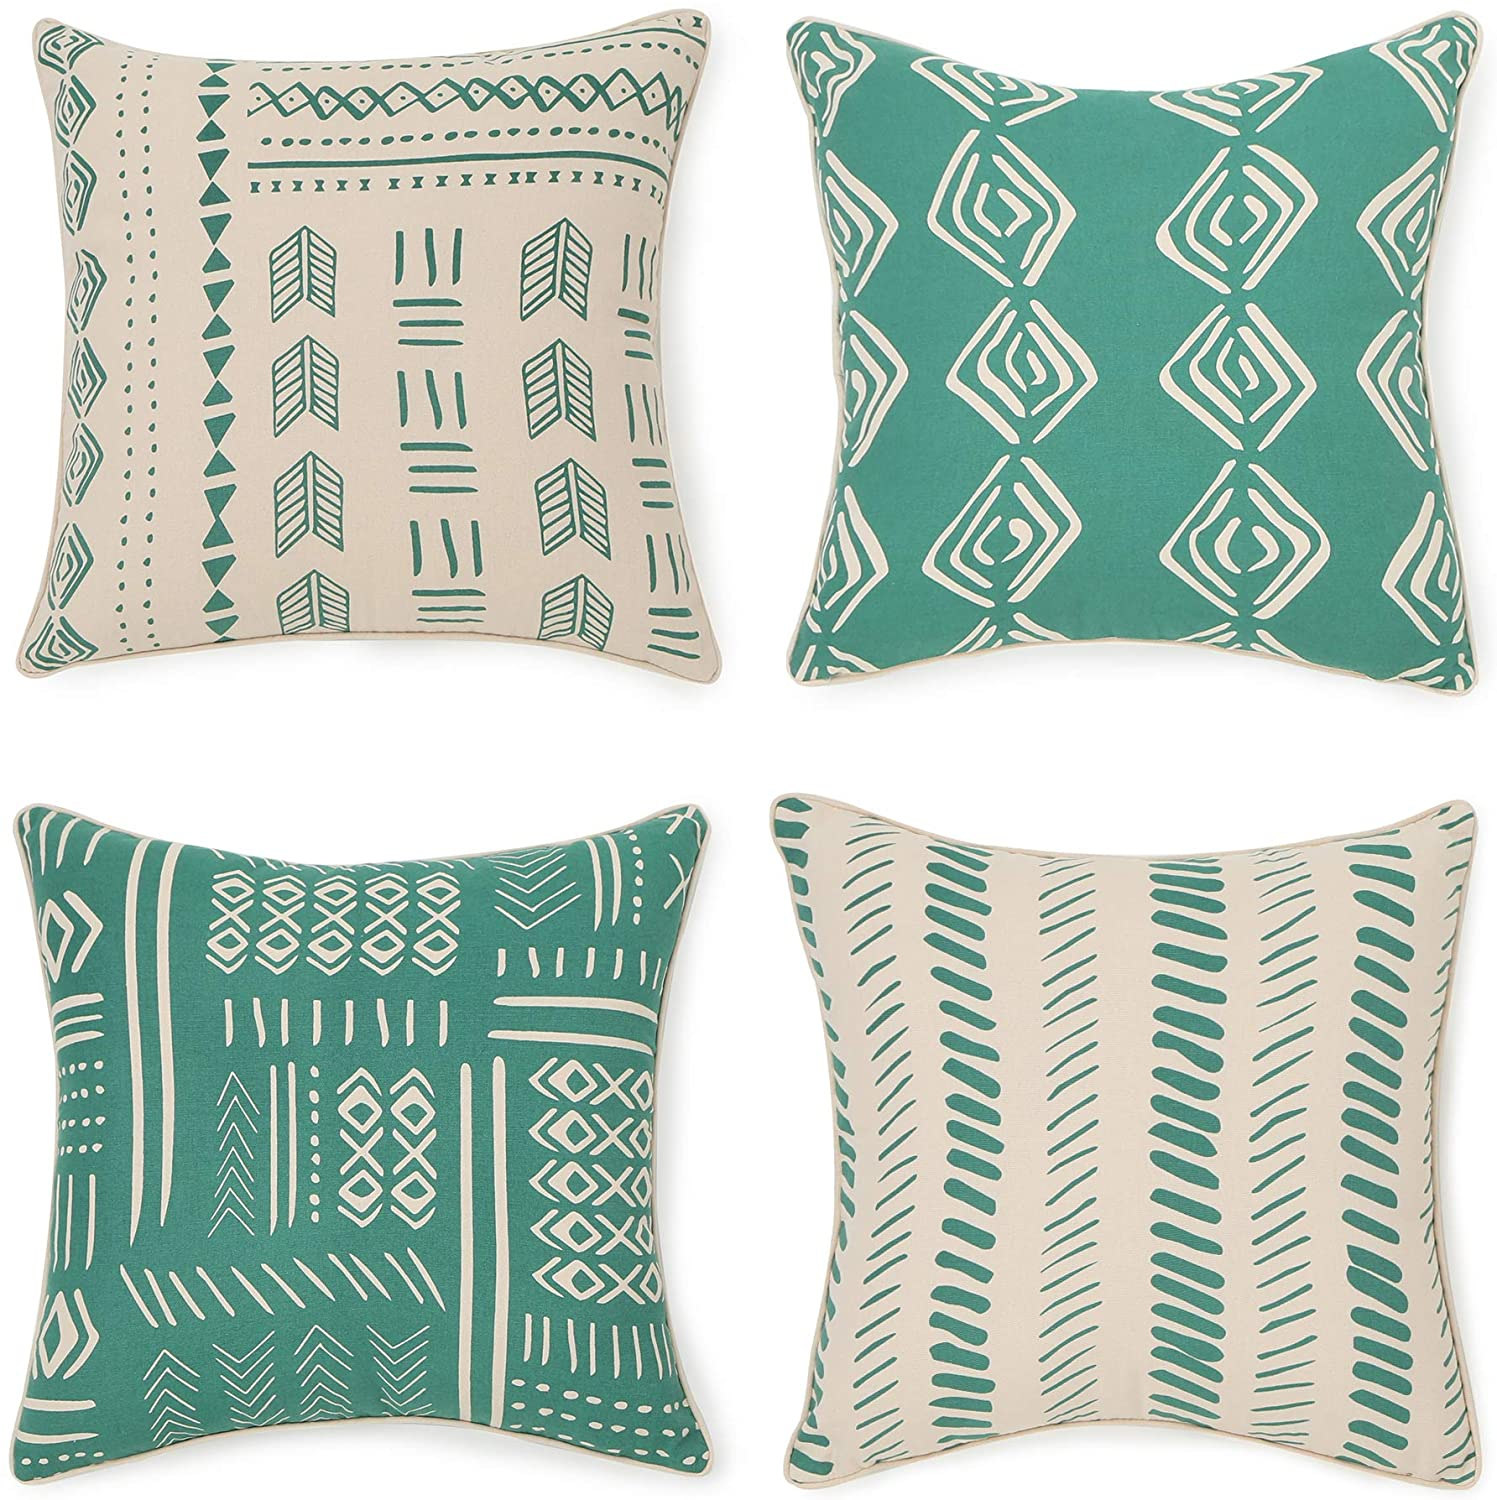 REDEARTH Printed Throw Pillow Cushion Covers-Woven Decorative Farmhouse Cases Set for Couch, Sofa, Bed, Chair, Dining, Patio, Outdoor, car; 100% Cotton (18x18; Green1) Pack of 4